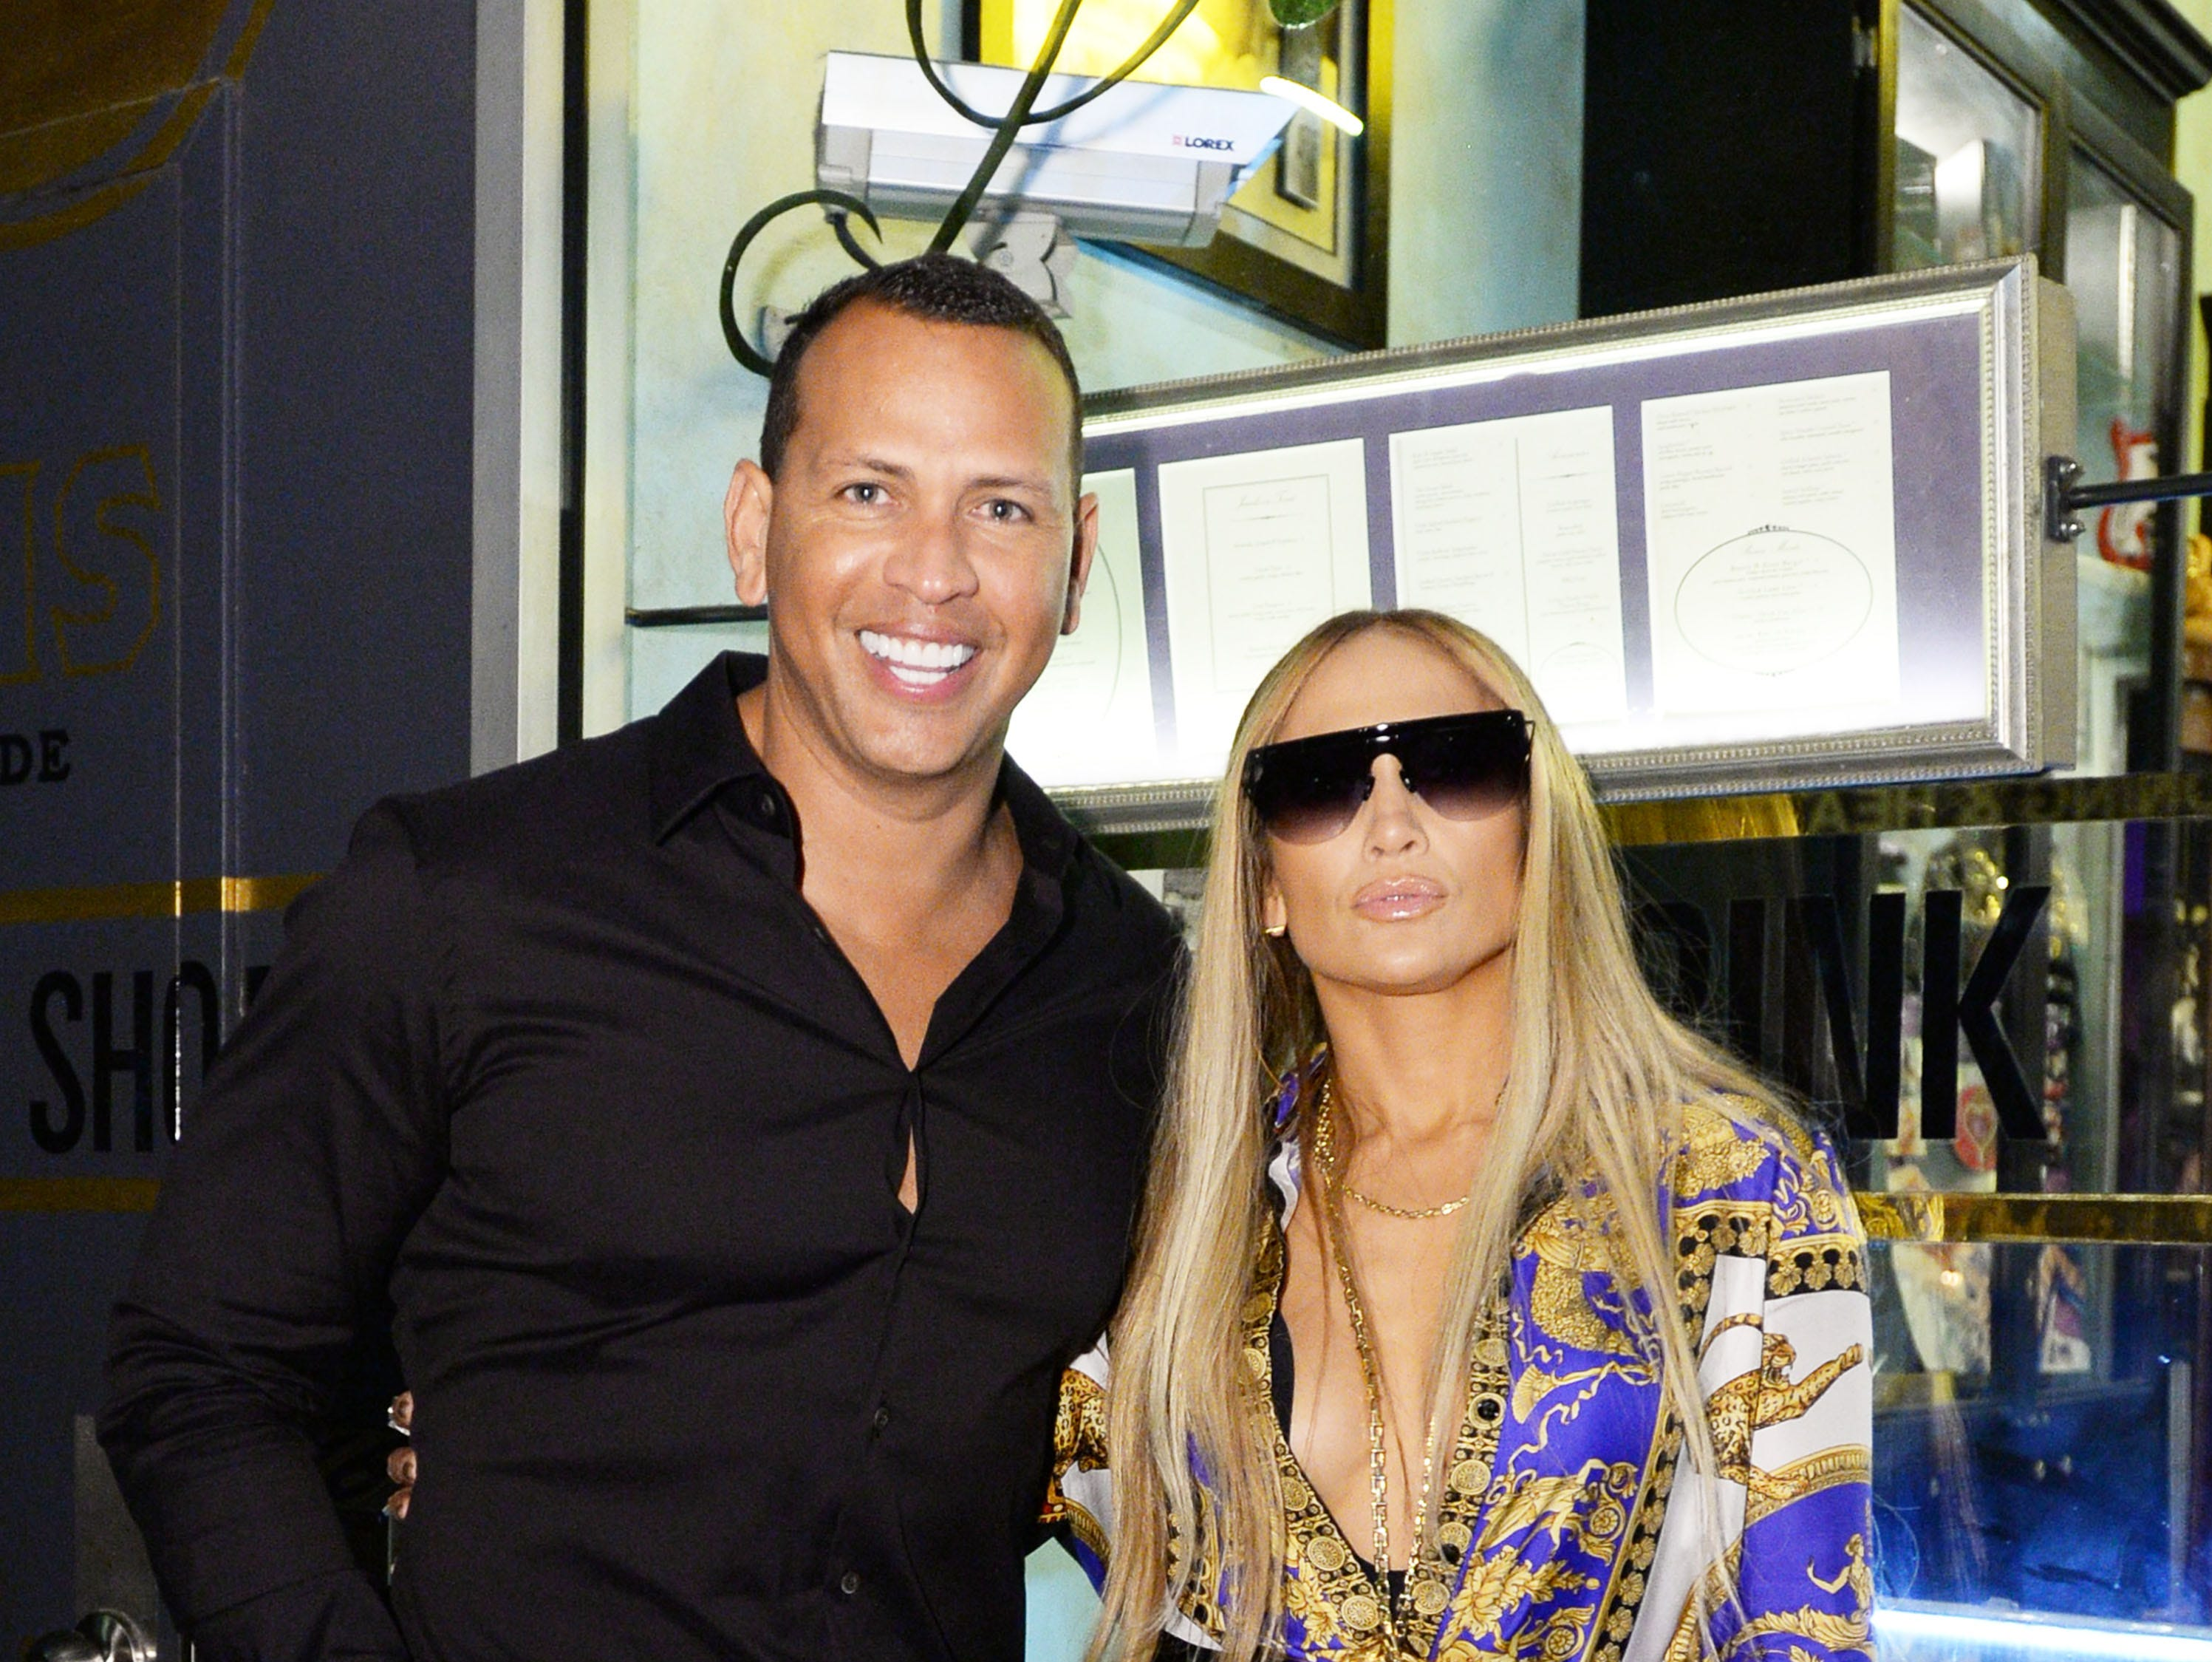 Alex Rodriguez and Jennifer Lopez attended Jennifer Lopez's MTV VMA's Vanguard Award Celebration on August 21, 2018 in New York, with Lopez rocking Versace.